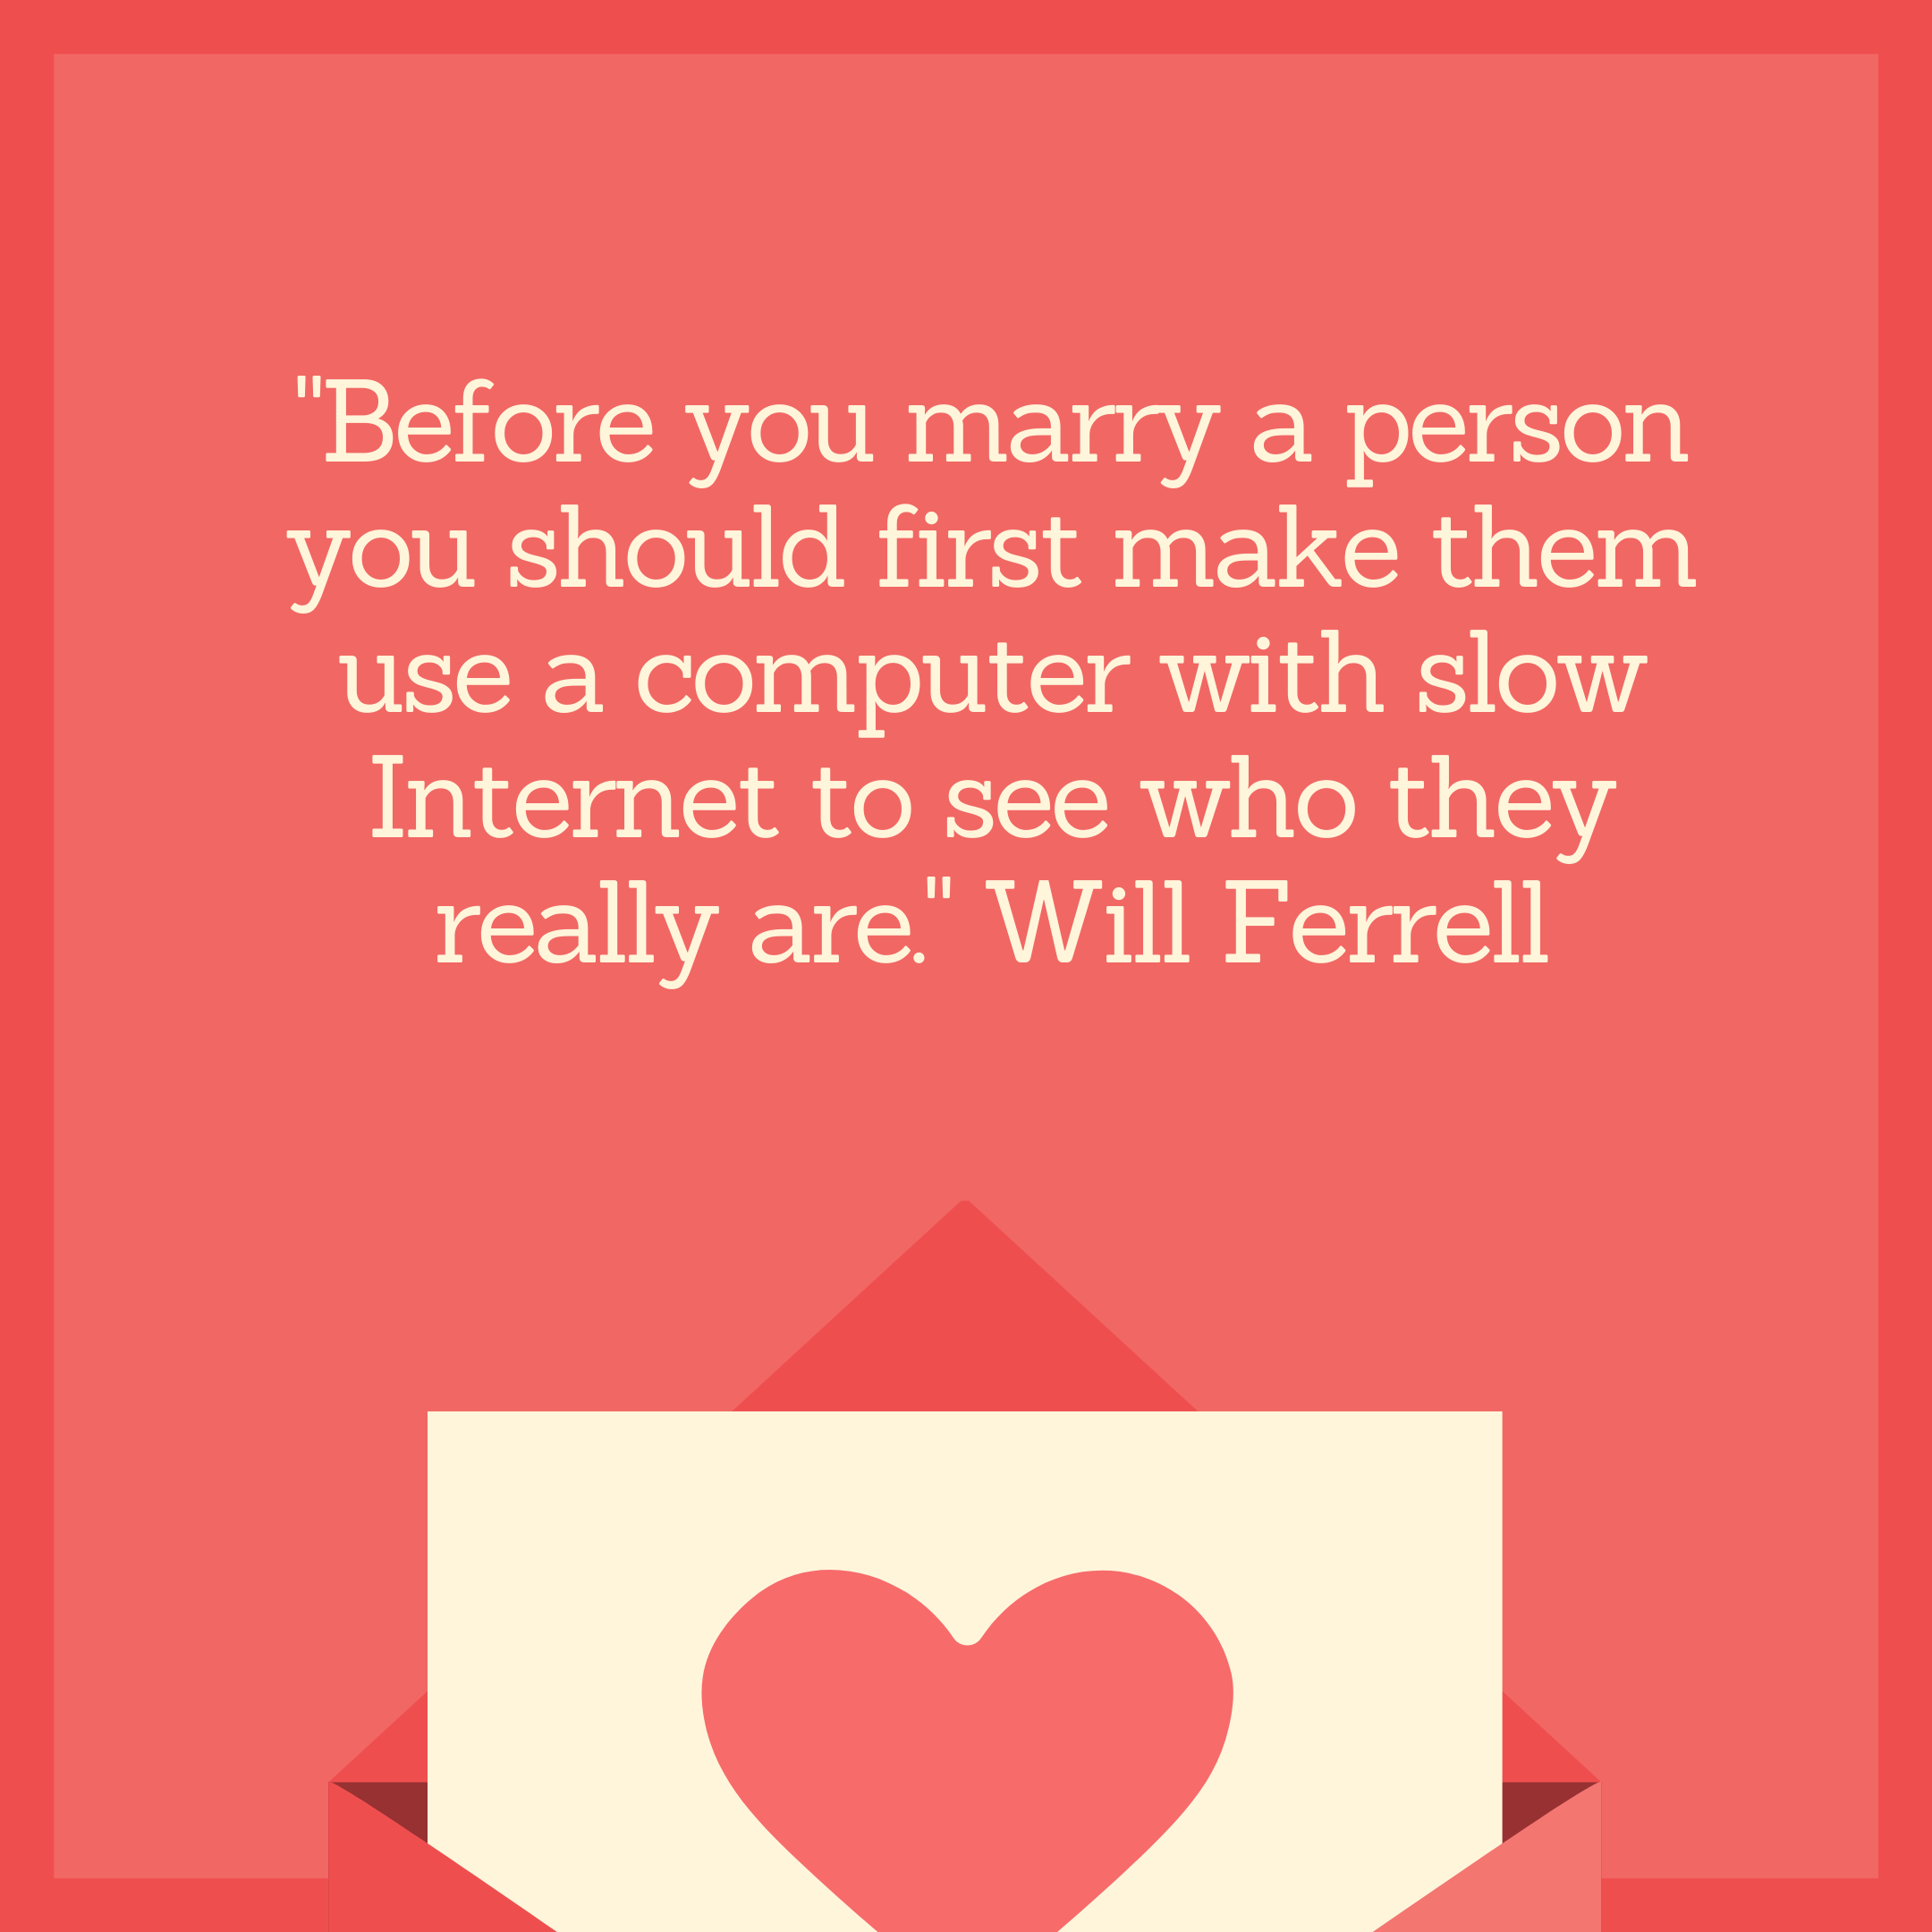 """Before you marry a person you should first make them use a computer with slow Internet to see who they really are."" Will Ferrell"